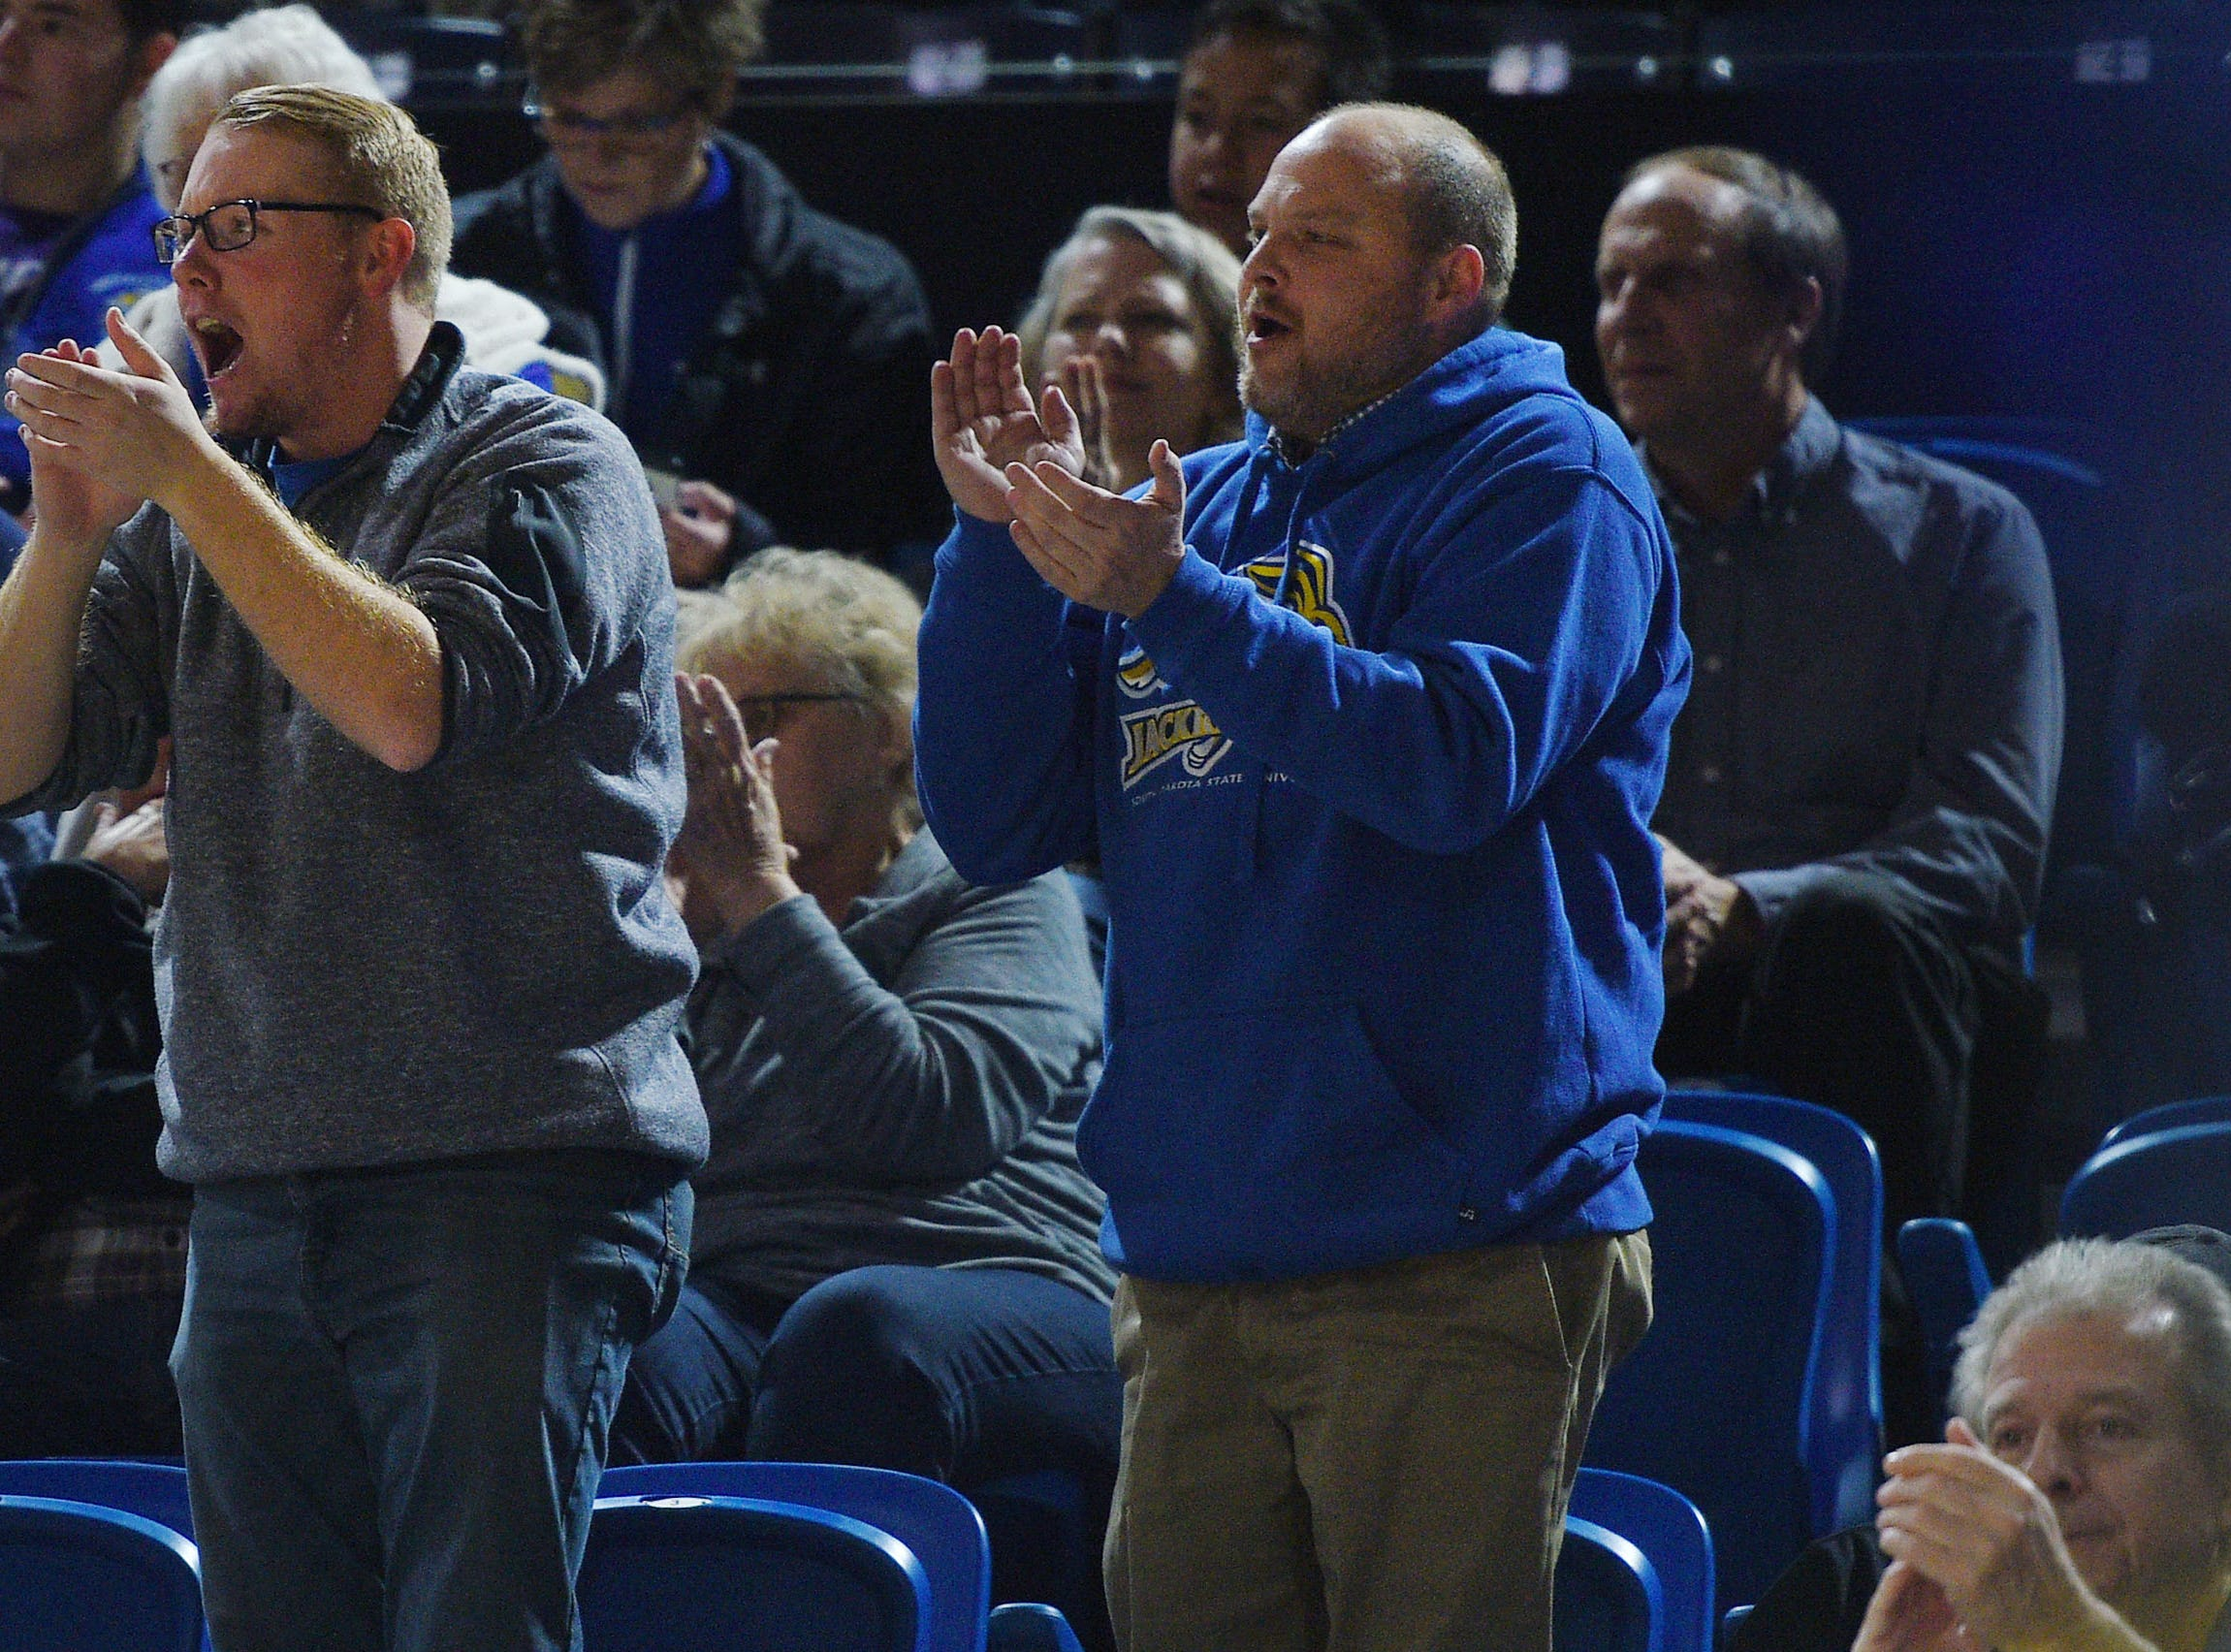 SDSU fans cheer during the game against Green Bay Thursday, Nov. 29, at Frost Arena in Brookings.